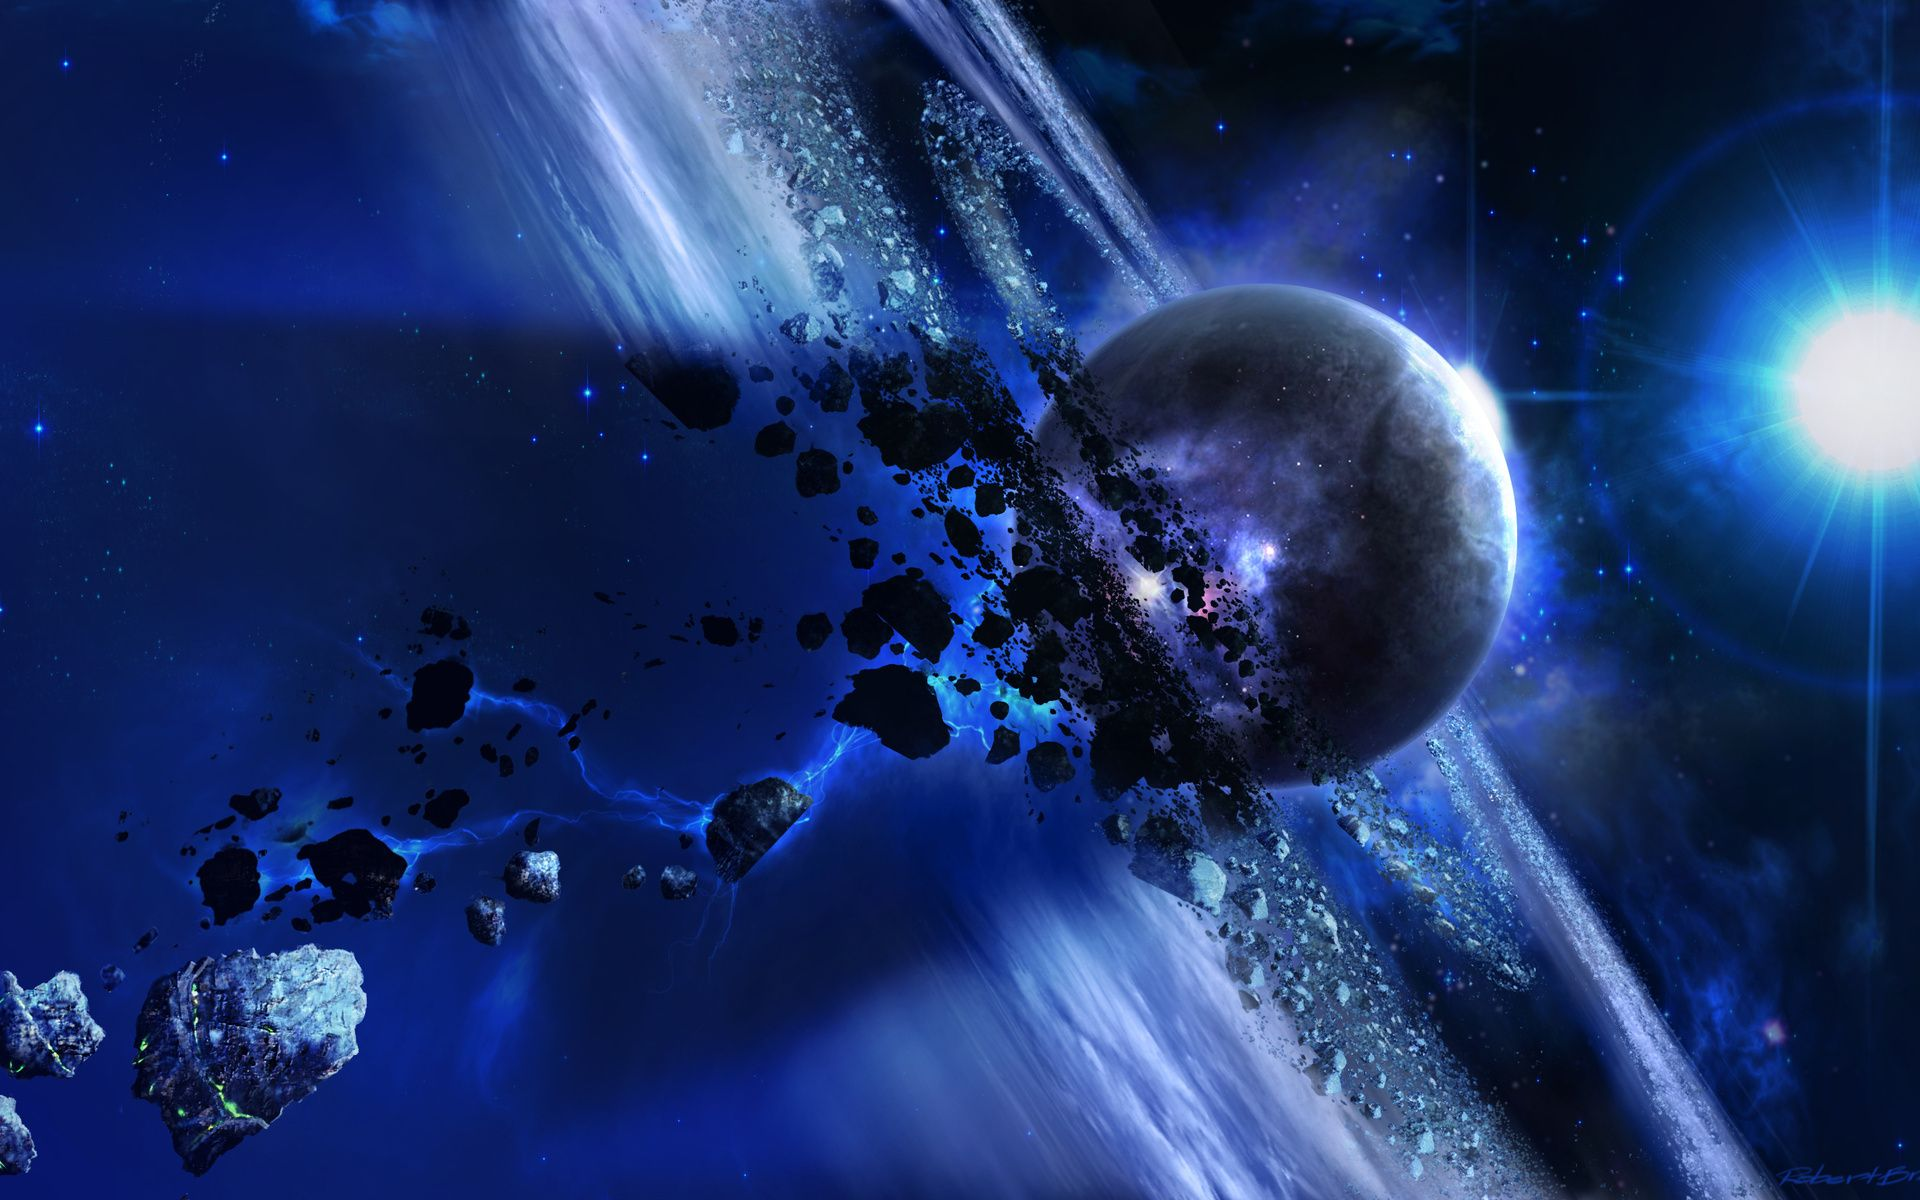 3d animation art blue space wallpaper hd free download for 3d outer space